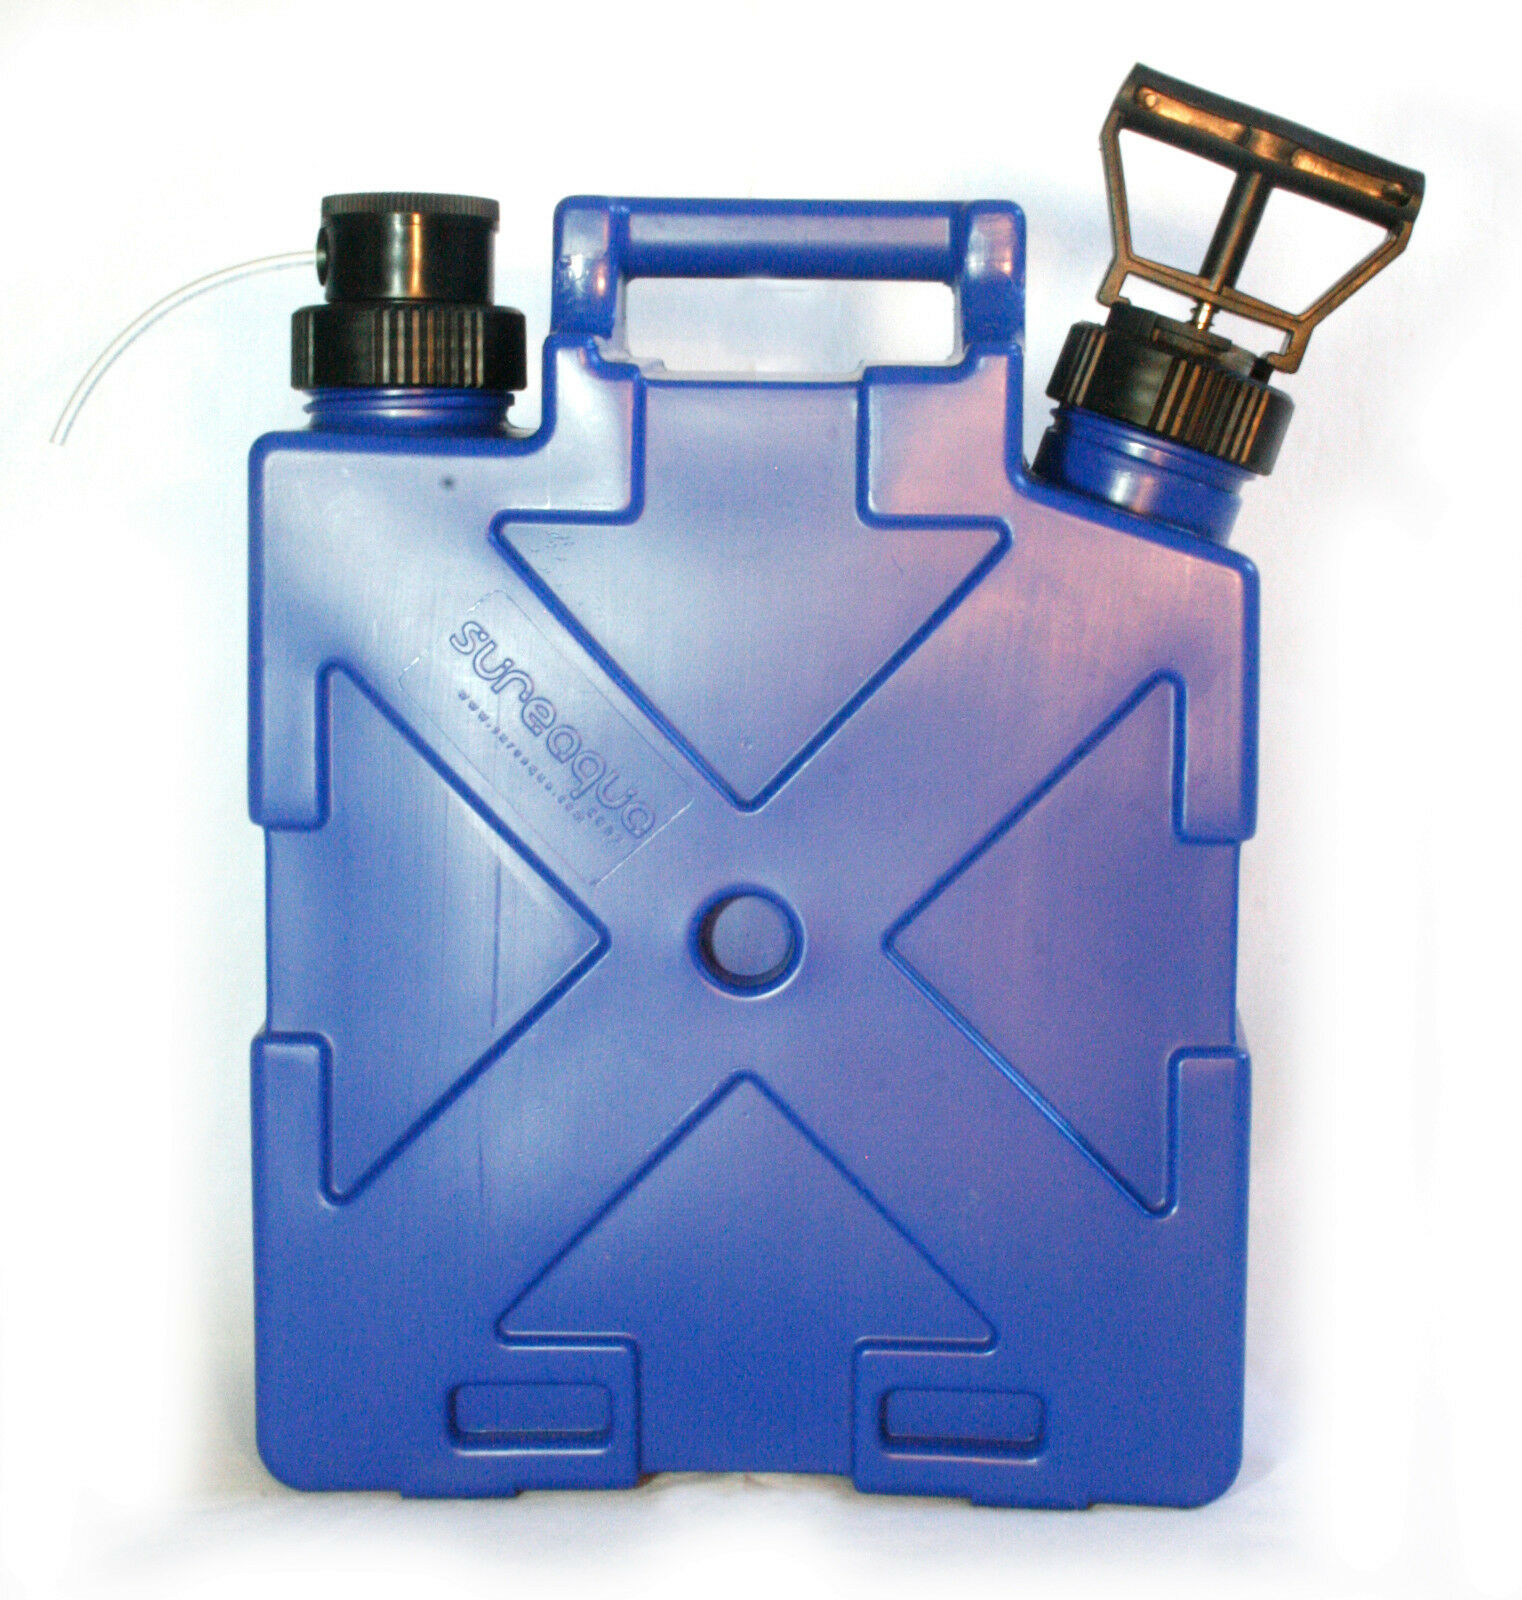 JerryCan{ Portable lightweight Water Filter  -Reuseable upto 25000 gallons  in stadium promotions